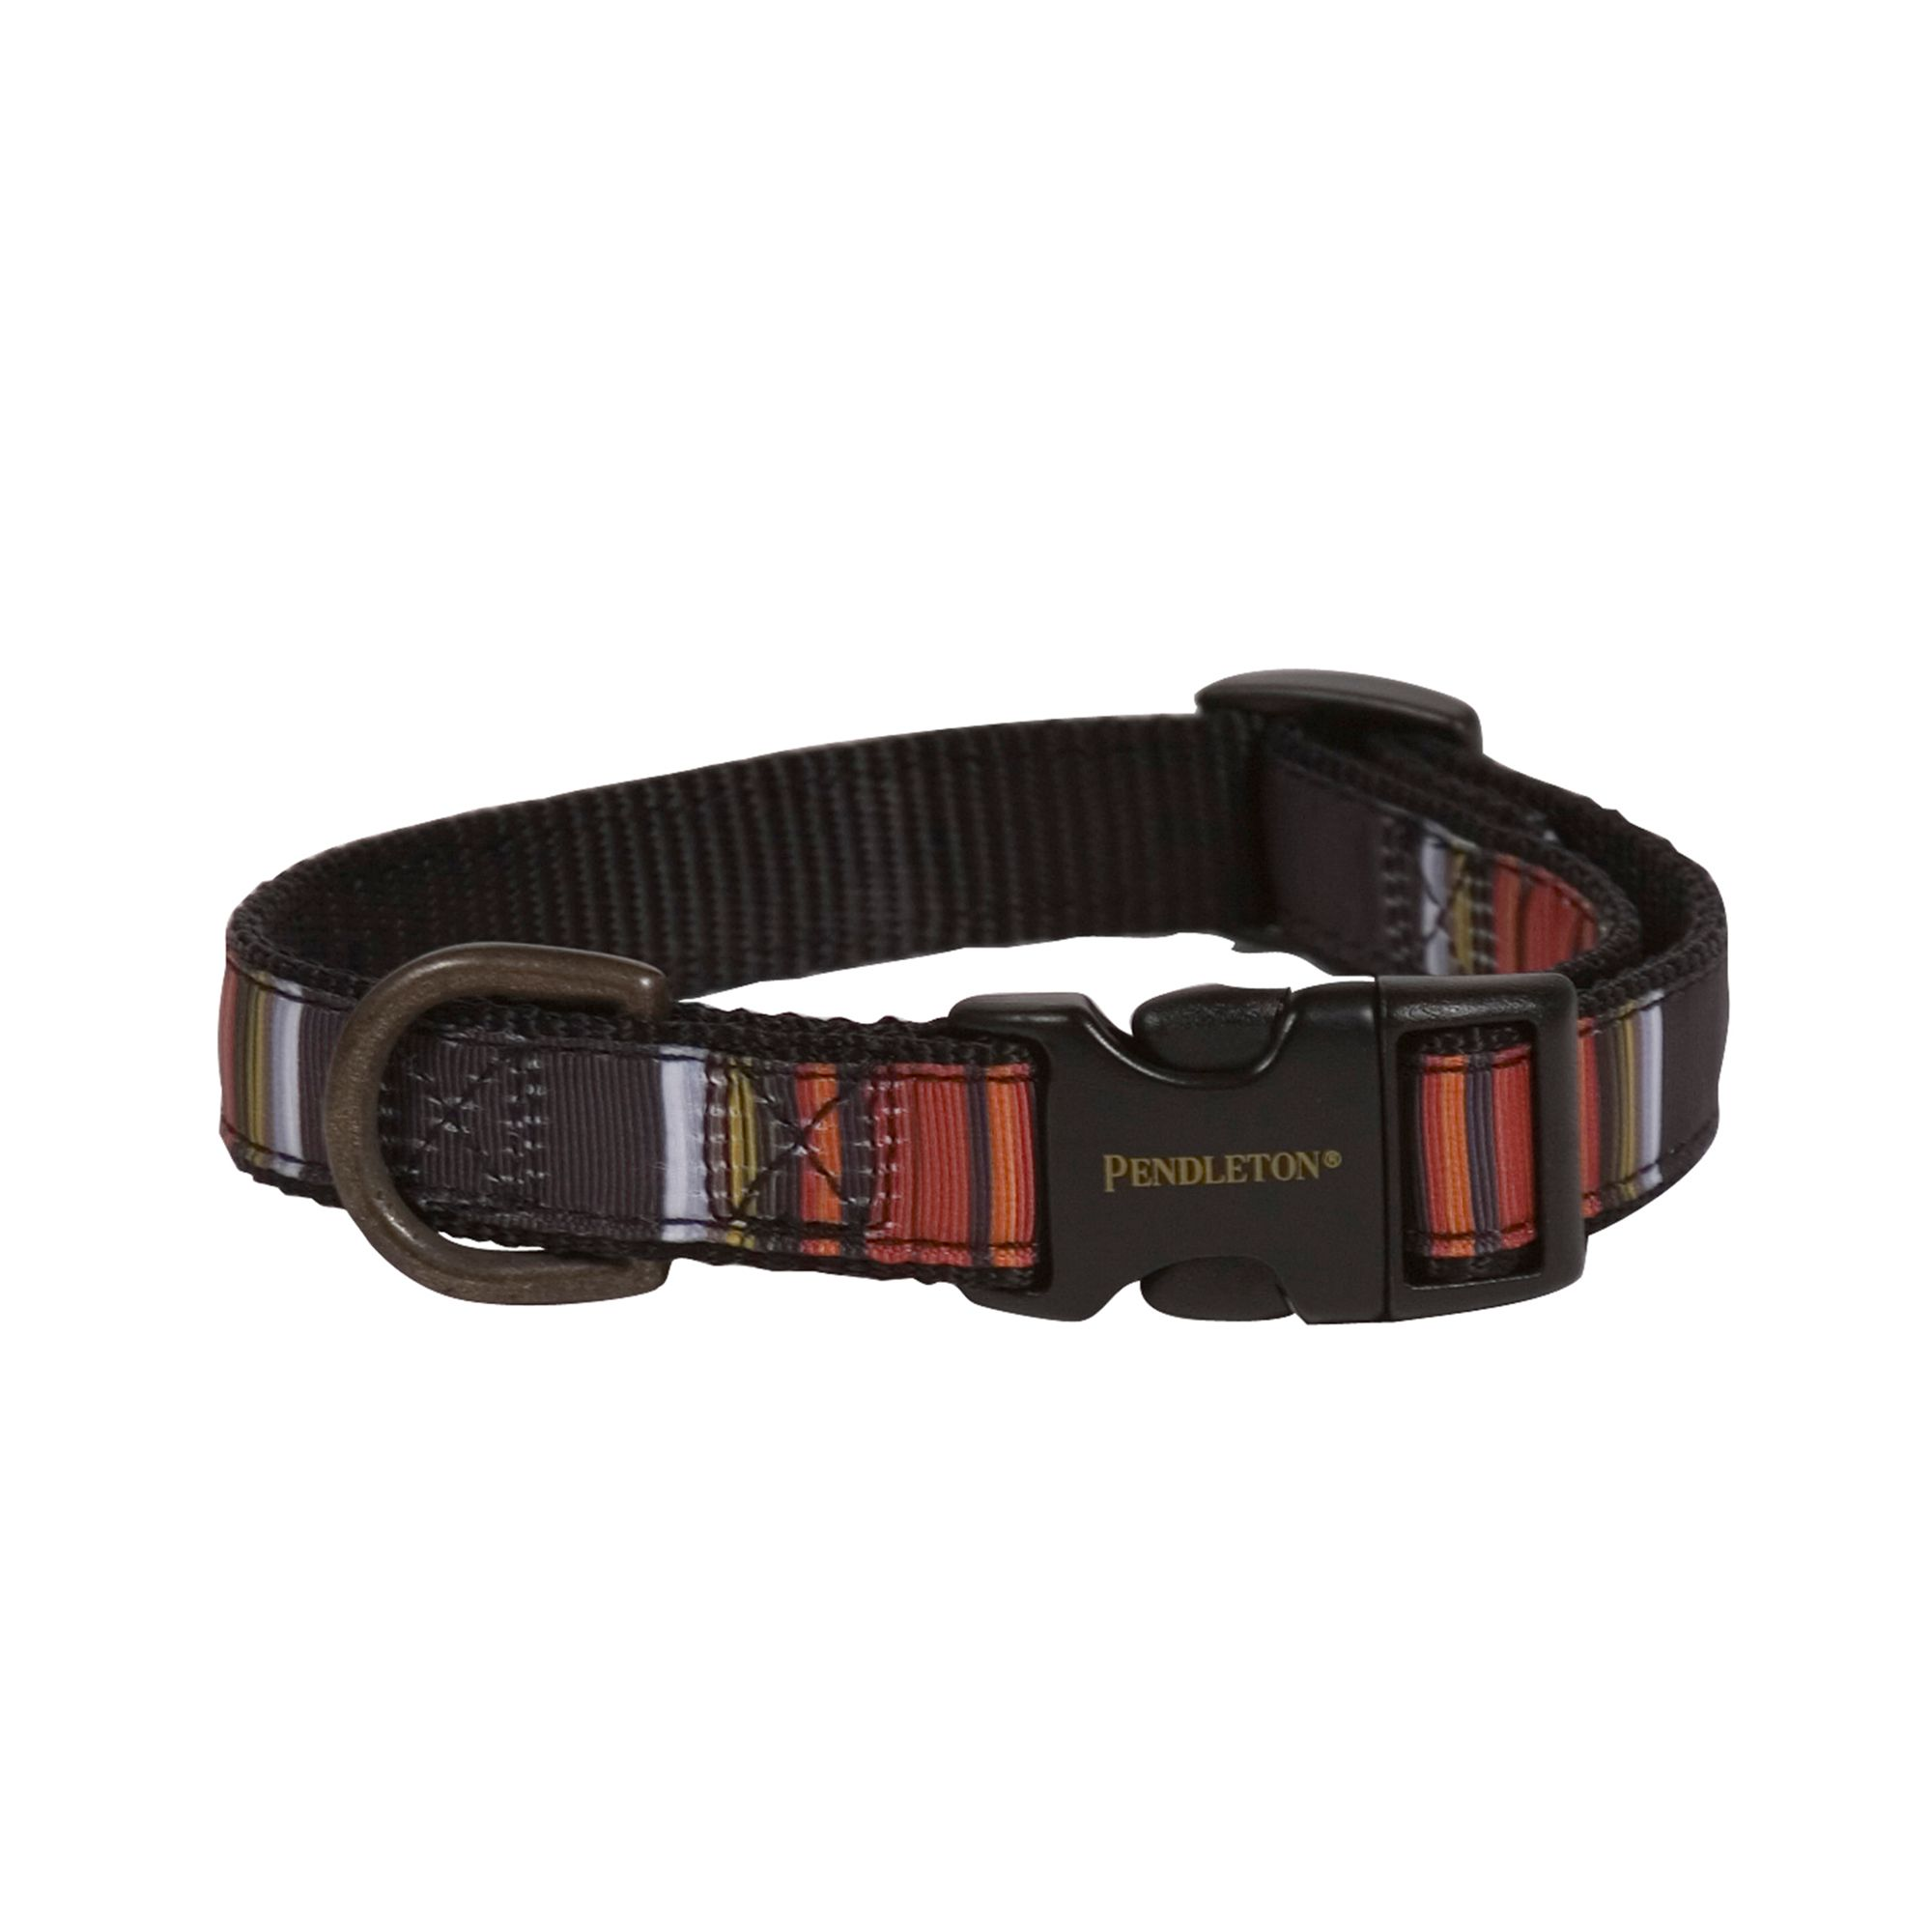 Pendleton National Park Acadia Hiker Dog Collar Size Small